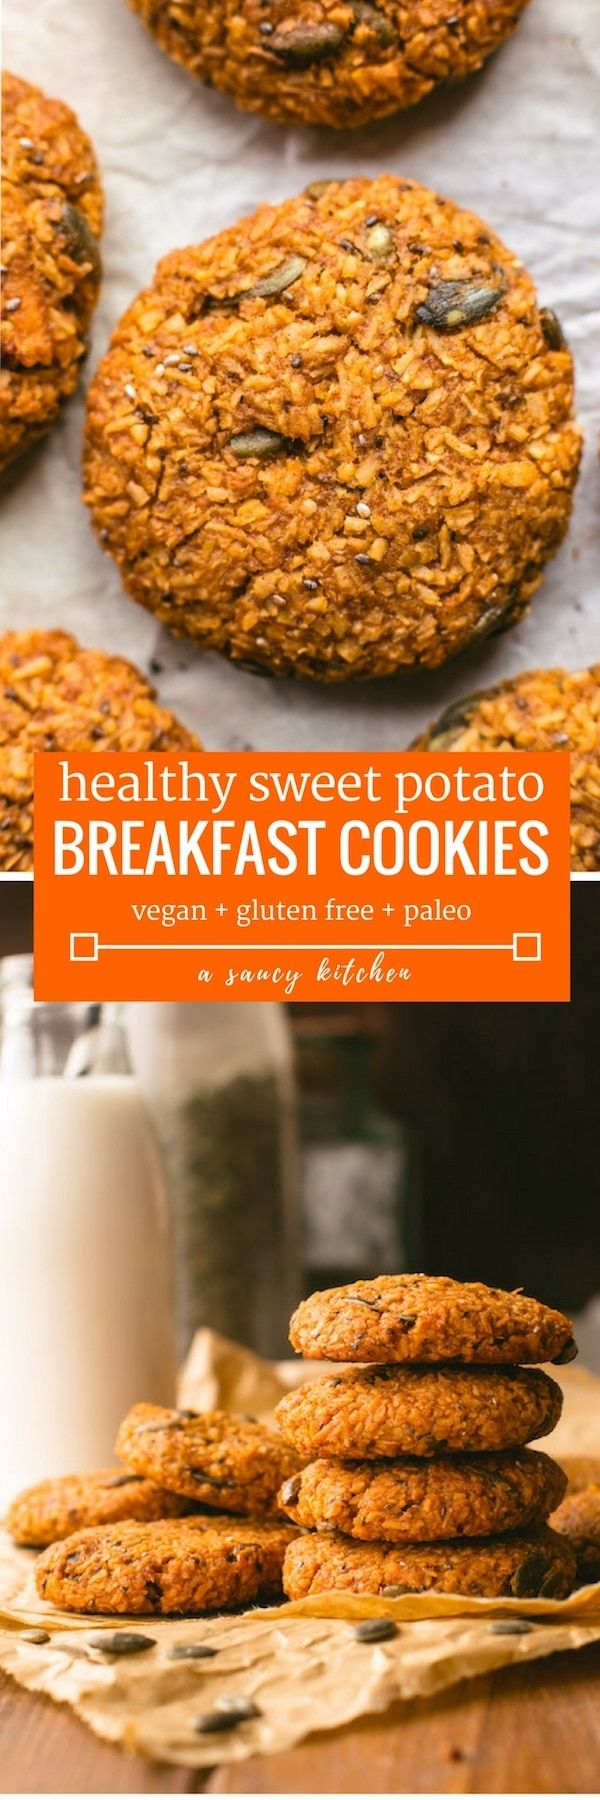 Healthy Sweet Potato Breakfast Cookies - made with desiccated coconut, a variety of seeds, mashed sweet potato and sweetened with coconut sugar | Paleo + Vegan http://healthyquickly.com